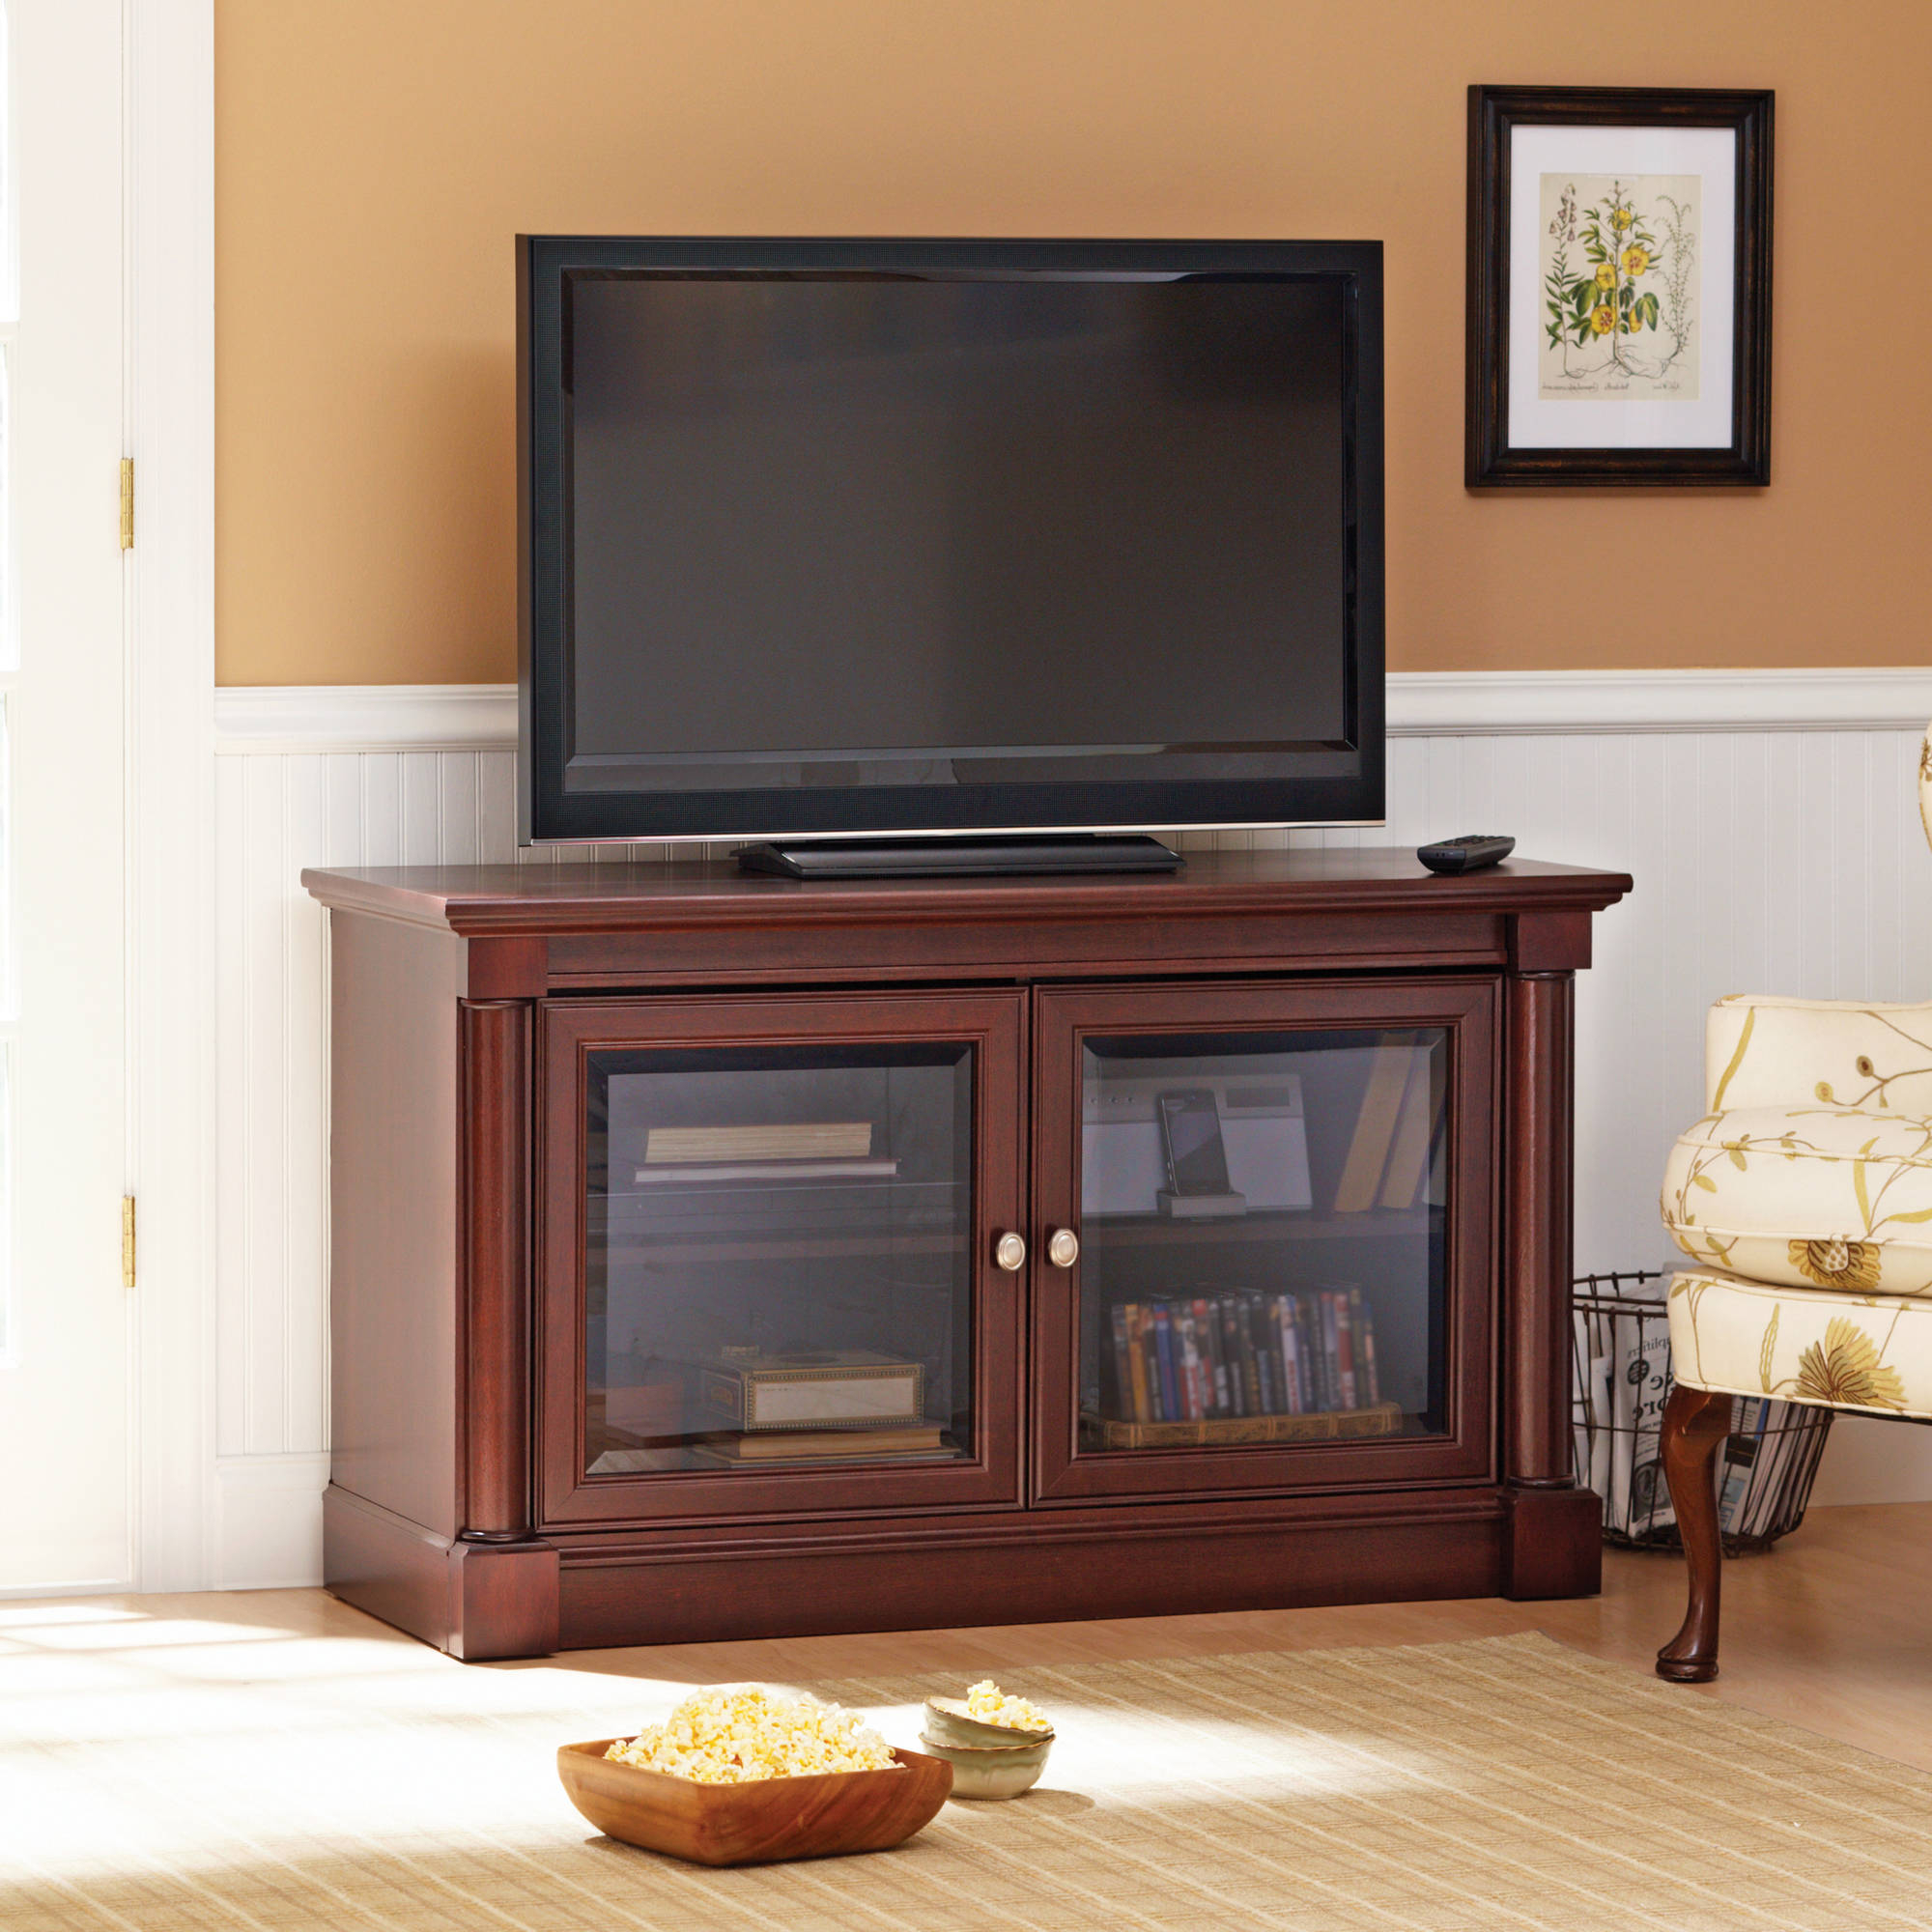 Recent Willow Mountain Cherry Tv Stand With Mount, For Tvs Up To 37 Pertaining To Tv Stands For Tube Tvs (View 7 of 20)